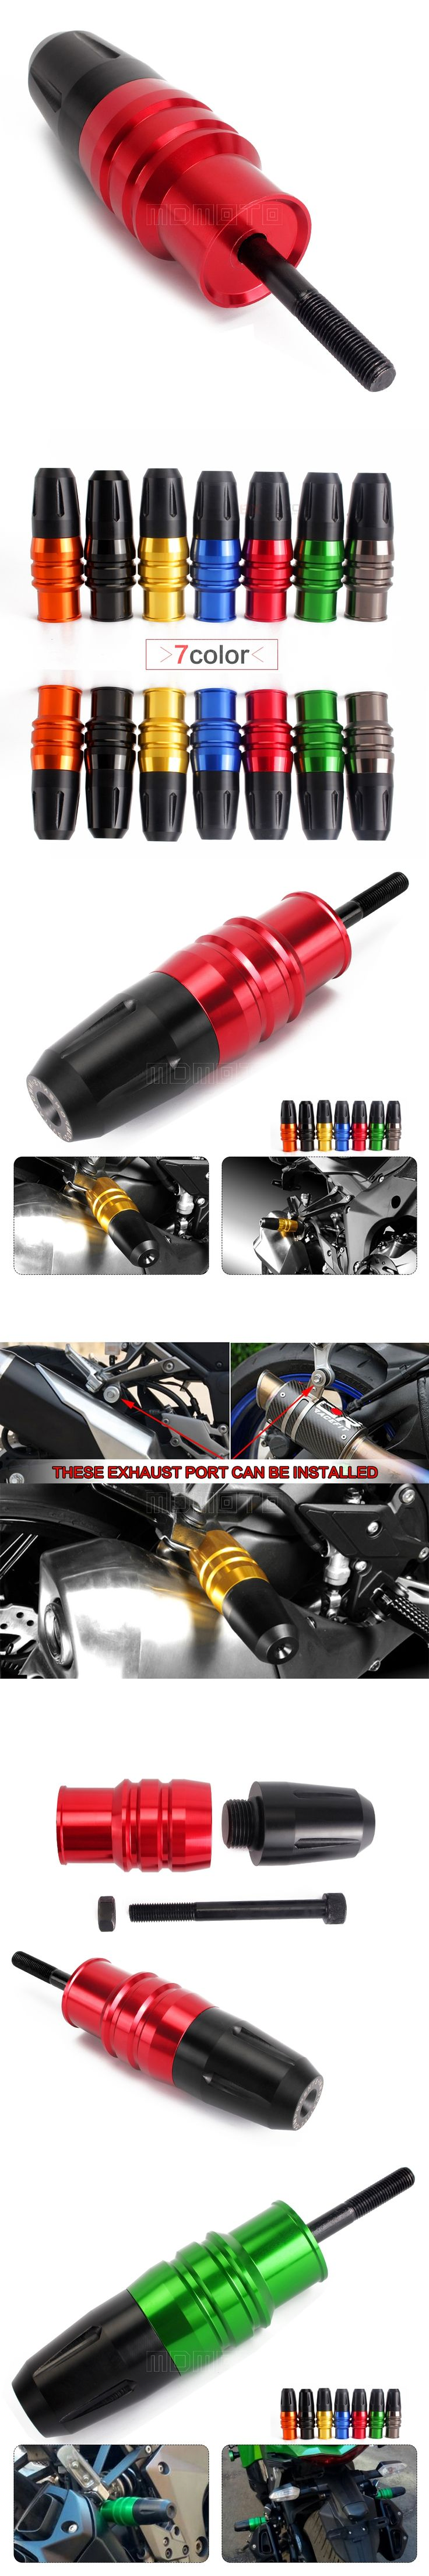 Motorcycle Exhaust Slider Crash Protector for kawasaki ninjia z750 z800 z300 zx9r zx12r zx14r z 800 zx 12r 9r 300 250 300sl